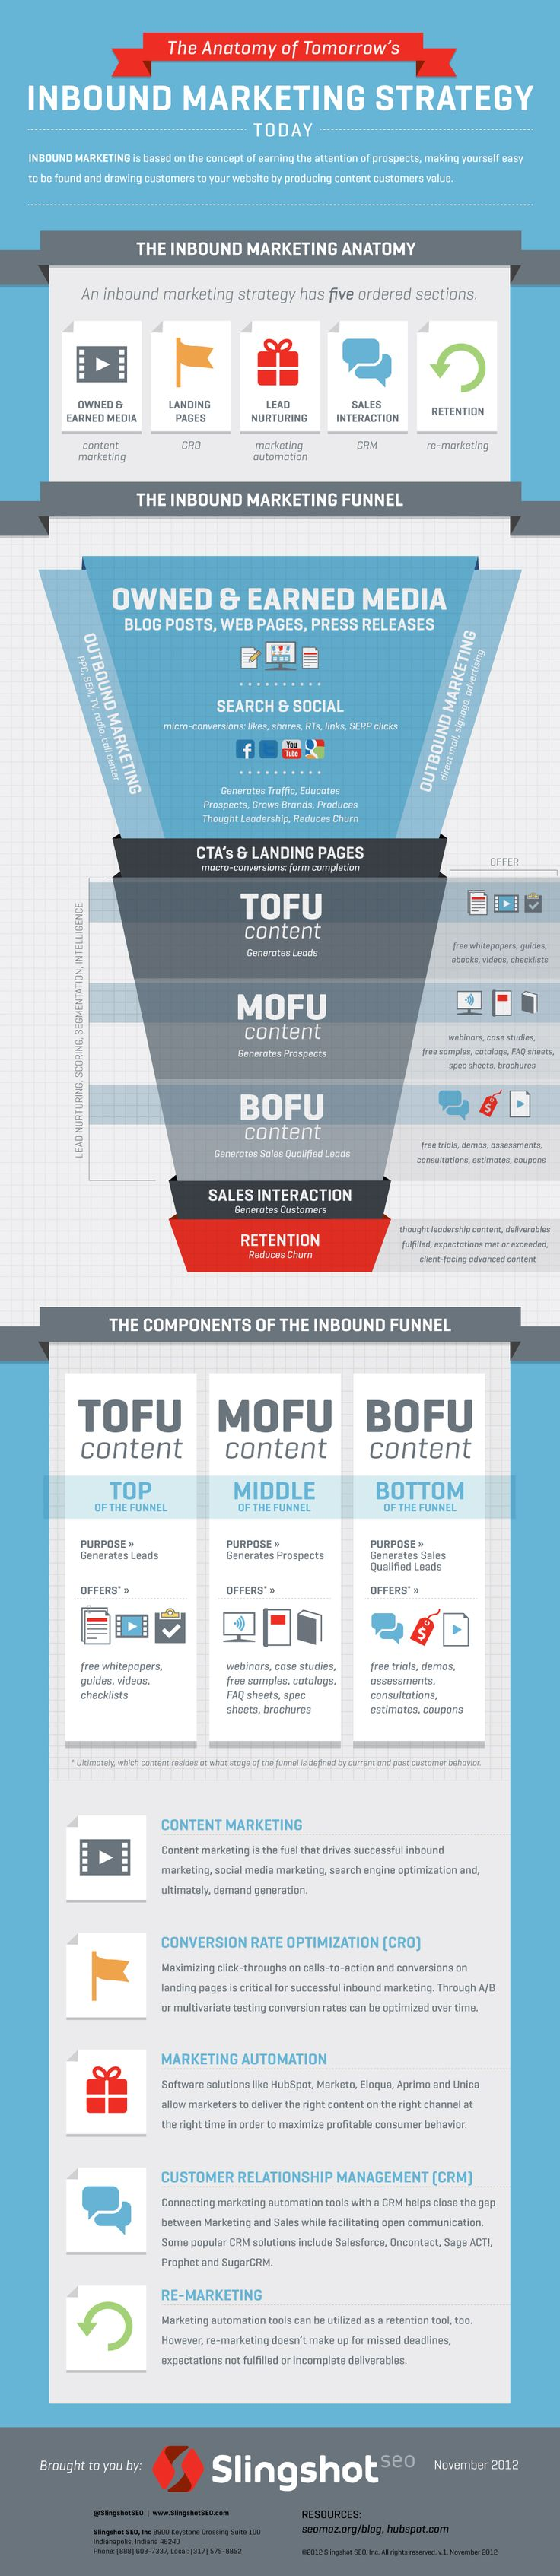 An In Depth Look at the Inbound Marketing Funnel [Infographic] image Inbound Marketing Infographic final